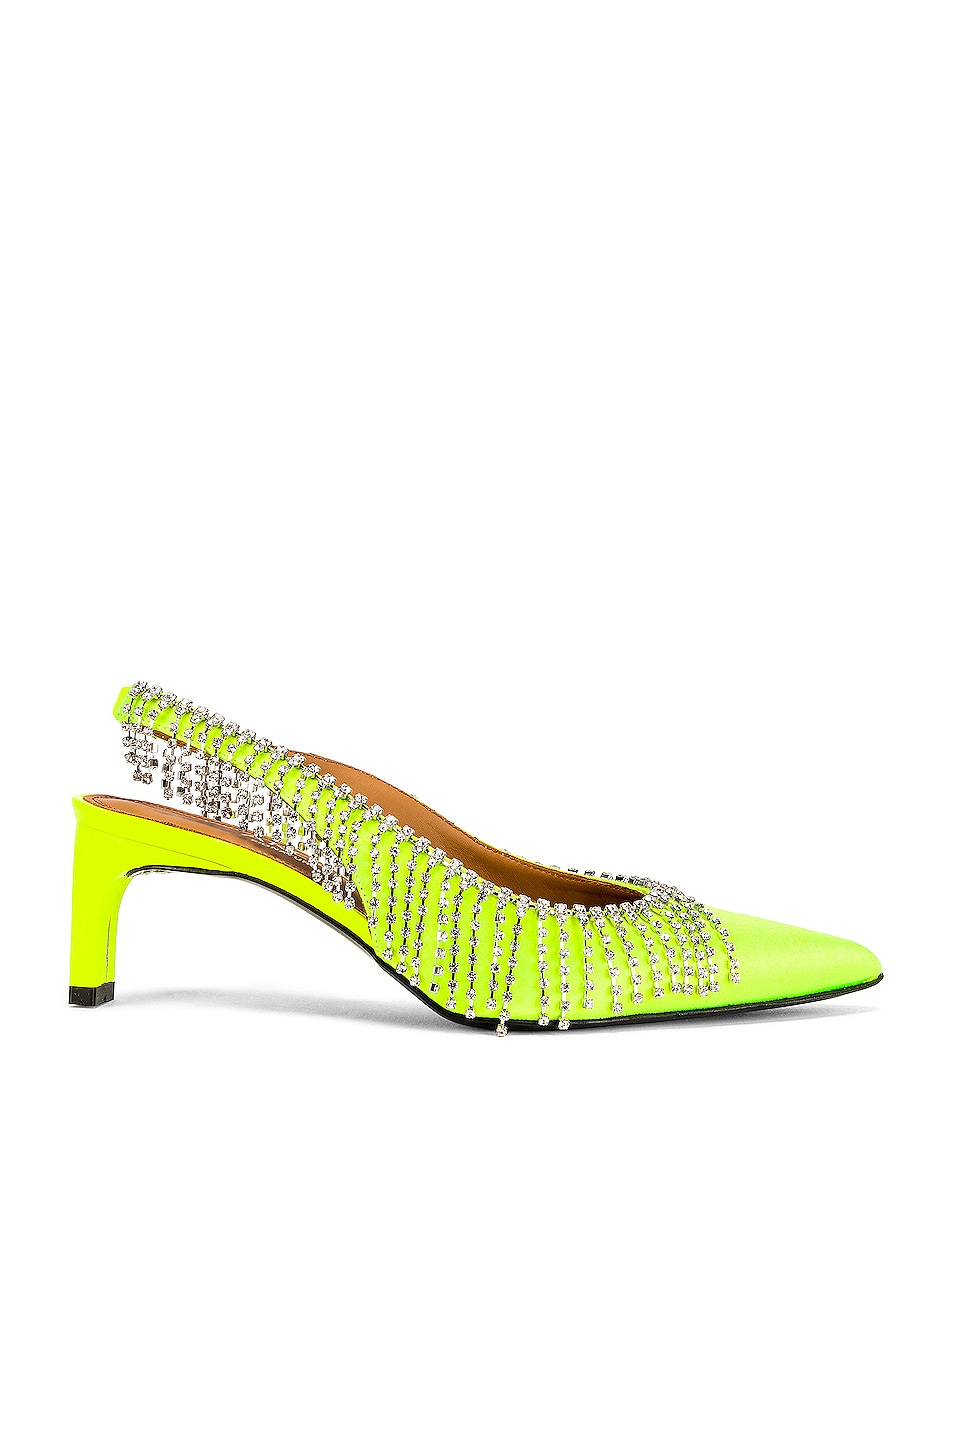 Image 1 of AREA Crystal Fringe Satin Slingback in Neon